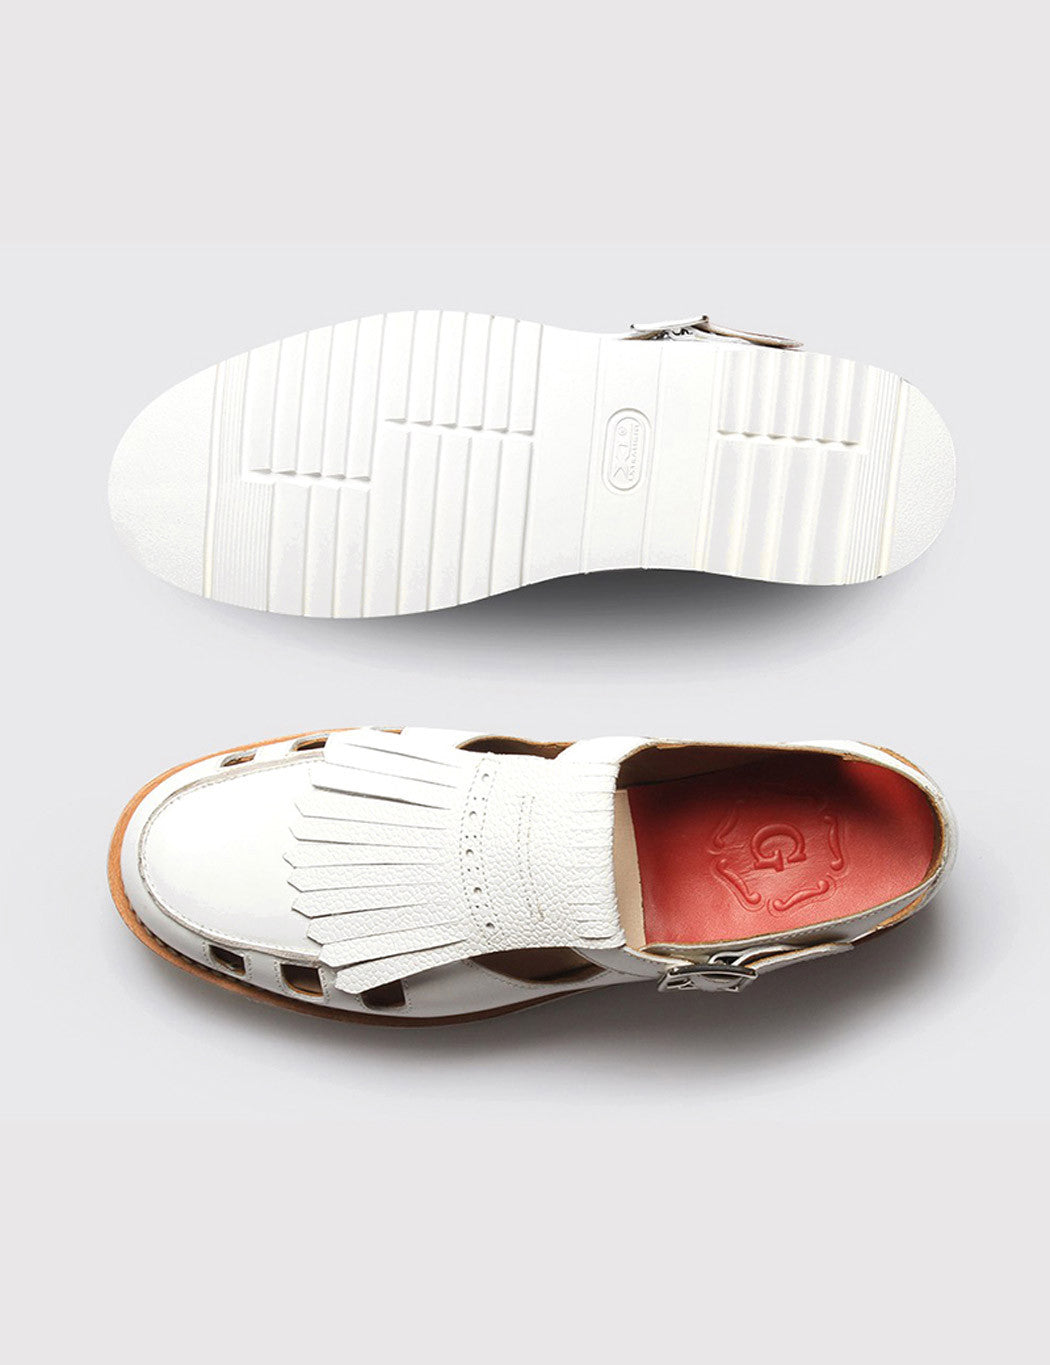 Womens Grenson Ethel Shoe - White Calf/Grain